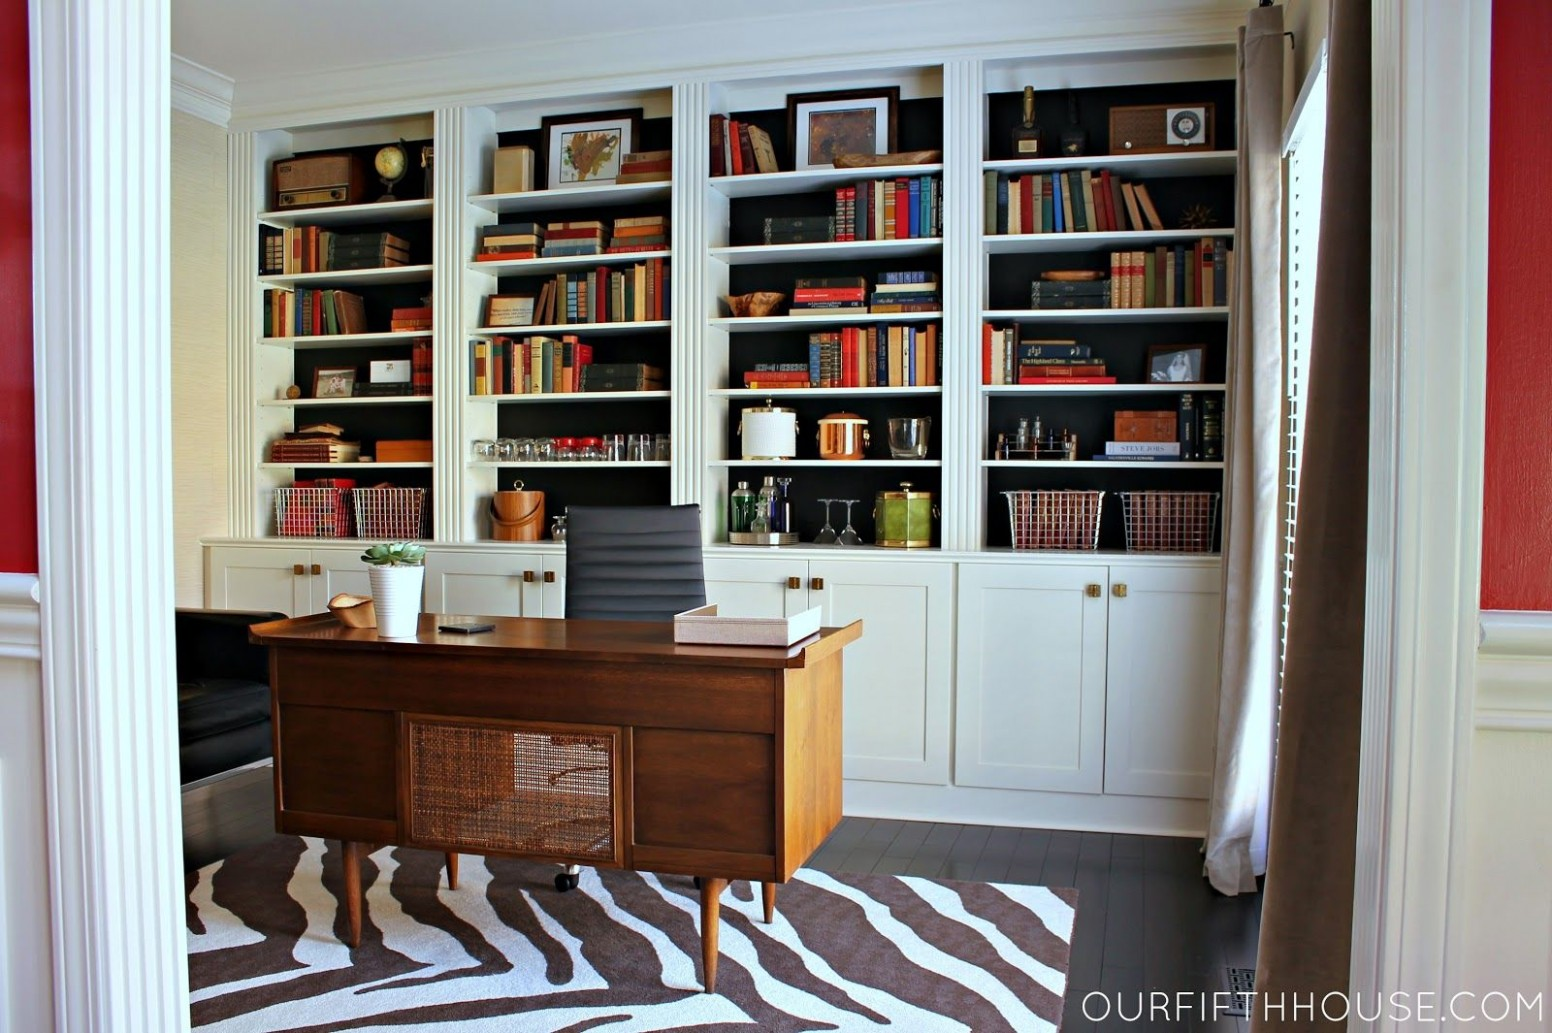 Home Office with New Built-In Bookcases  Home office design  - Home Office Bookshelf Ideas